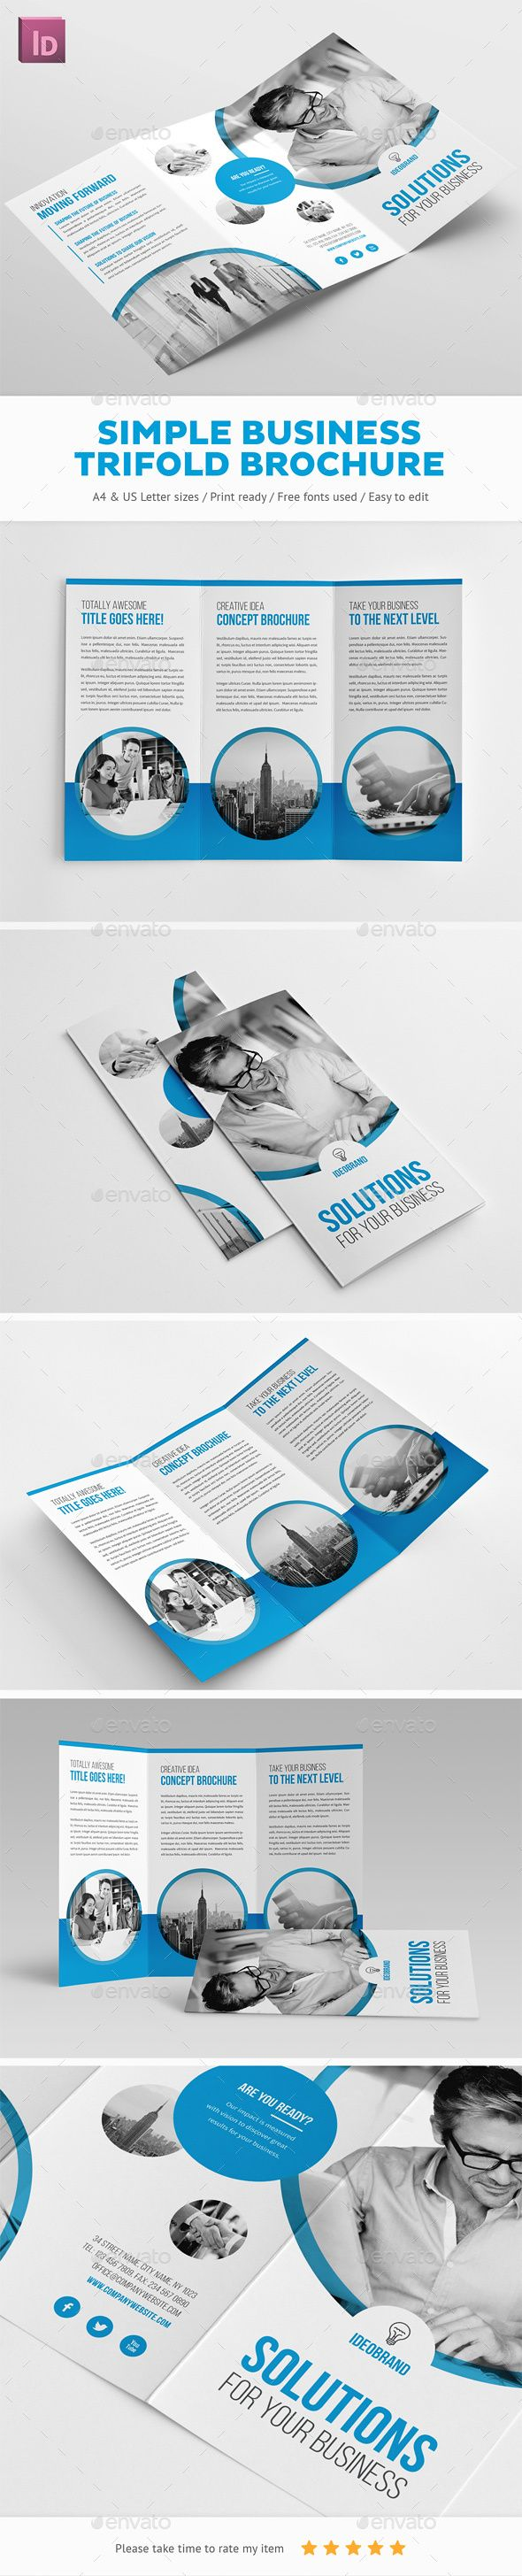 create a brochure for free